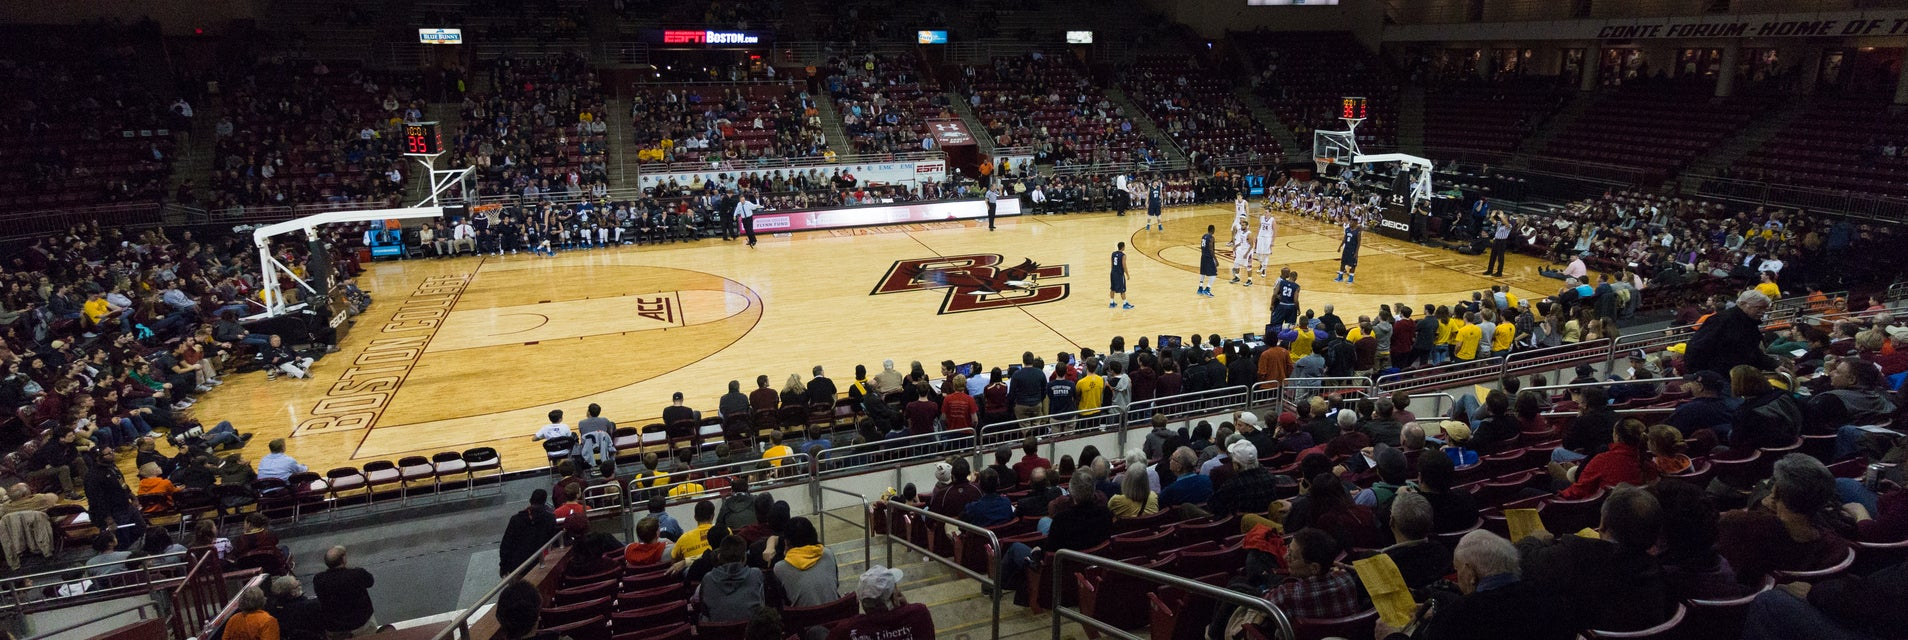 Boston College Basketball Tickets